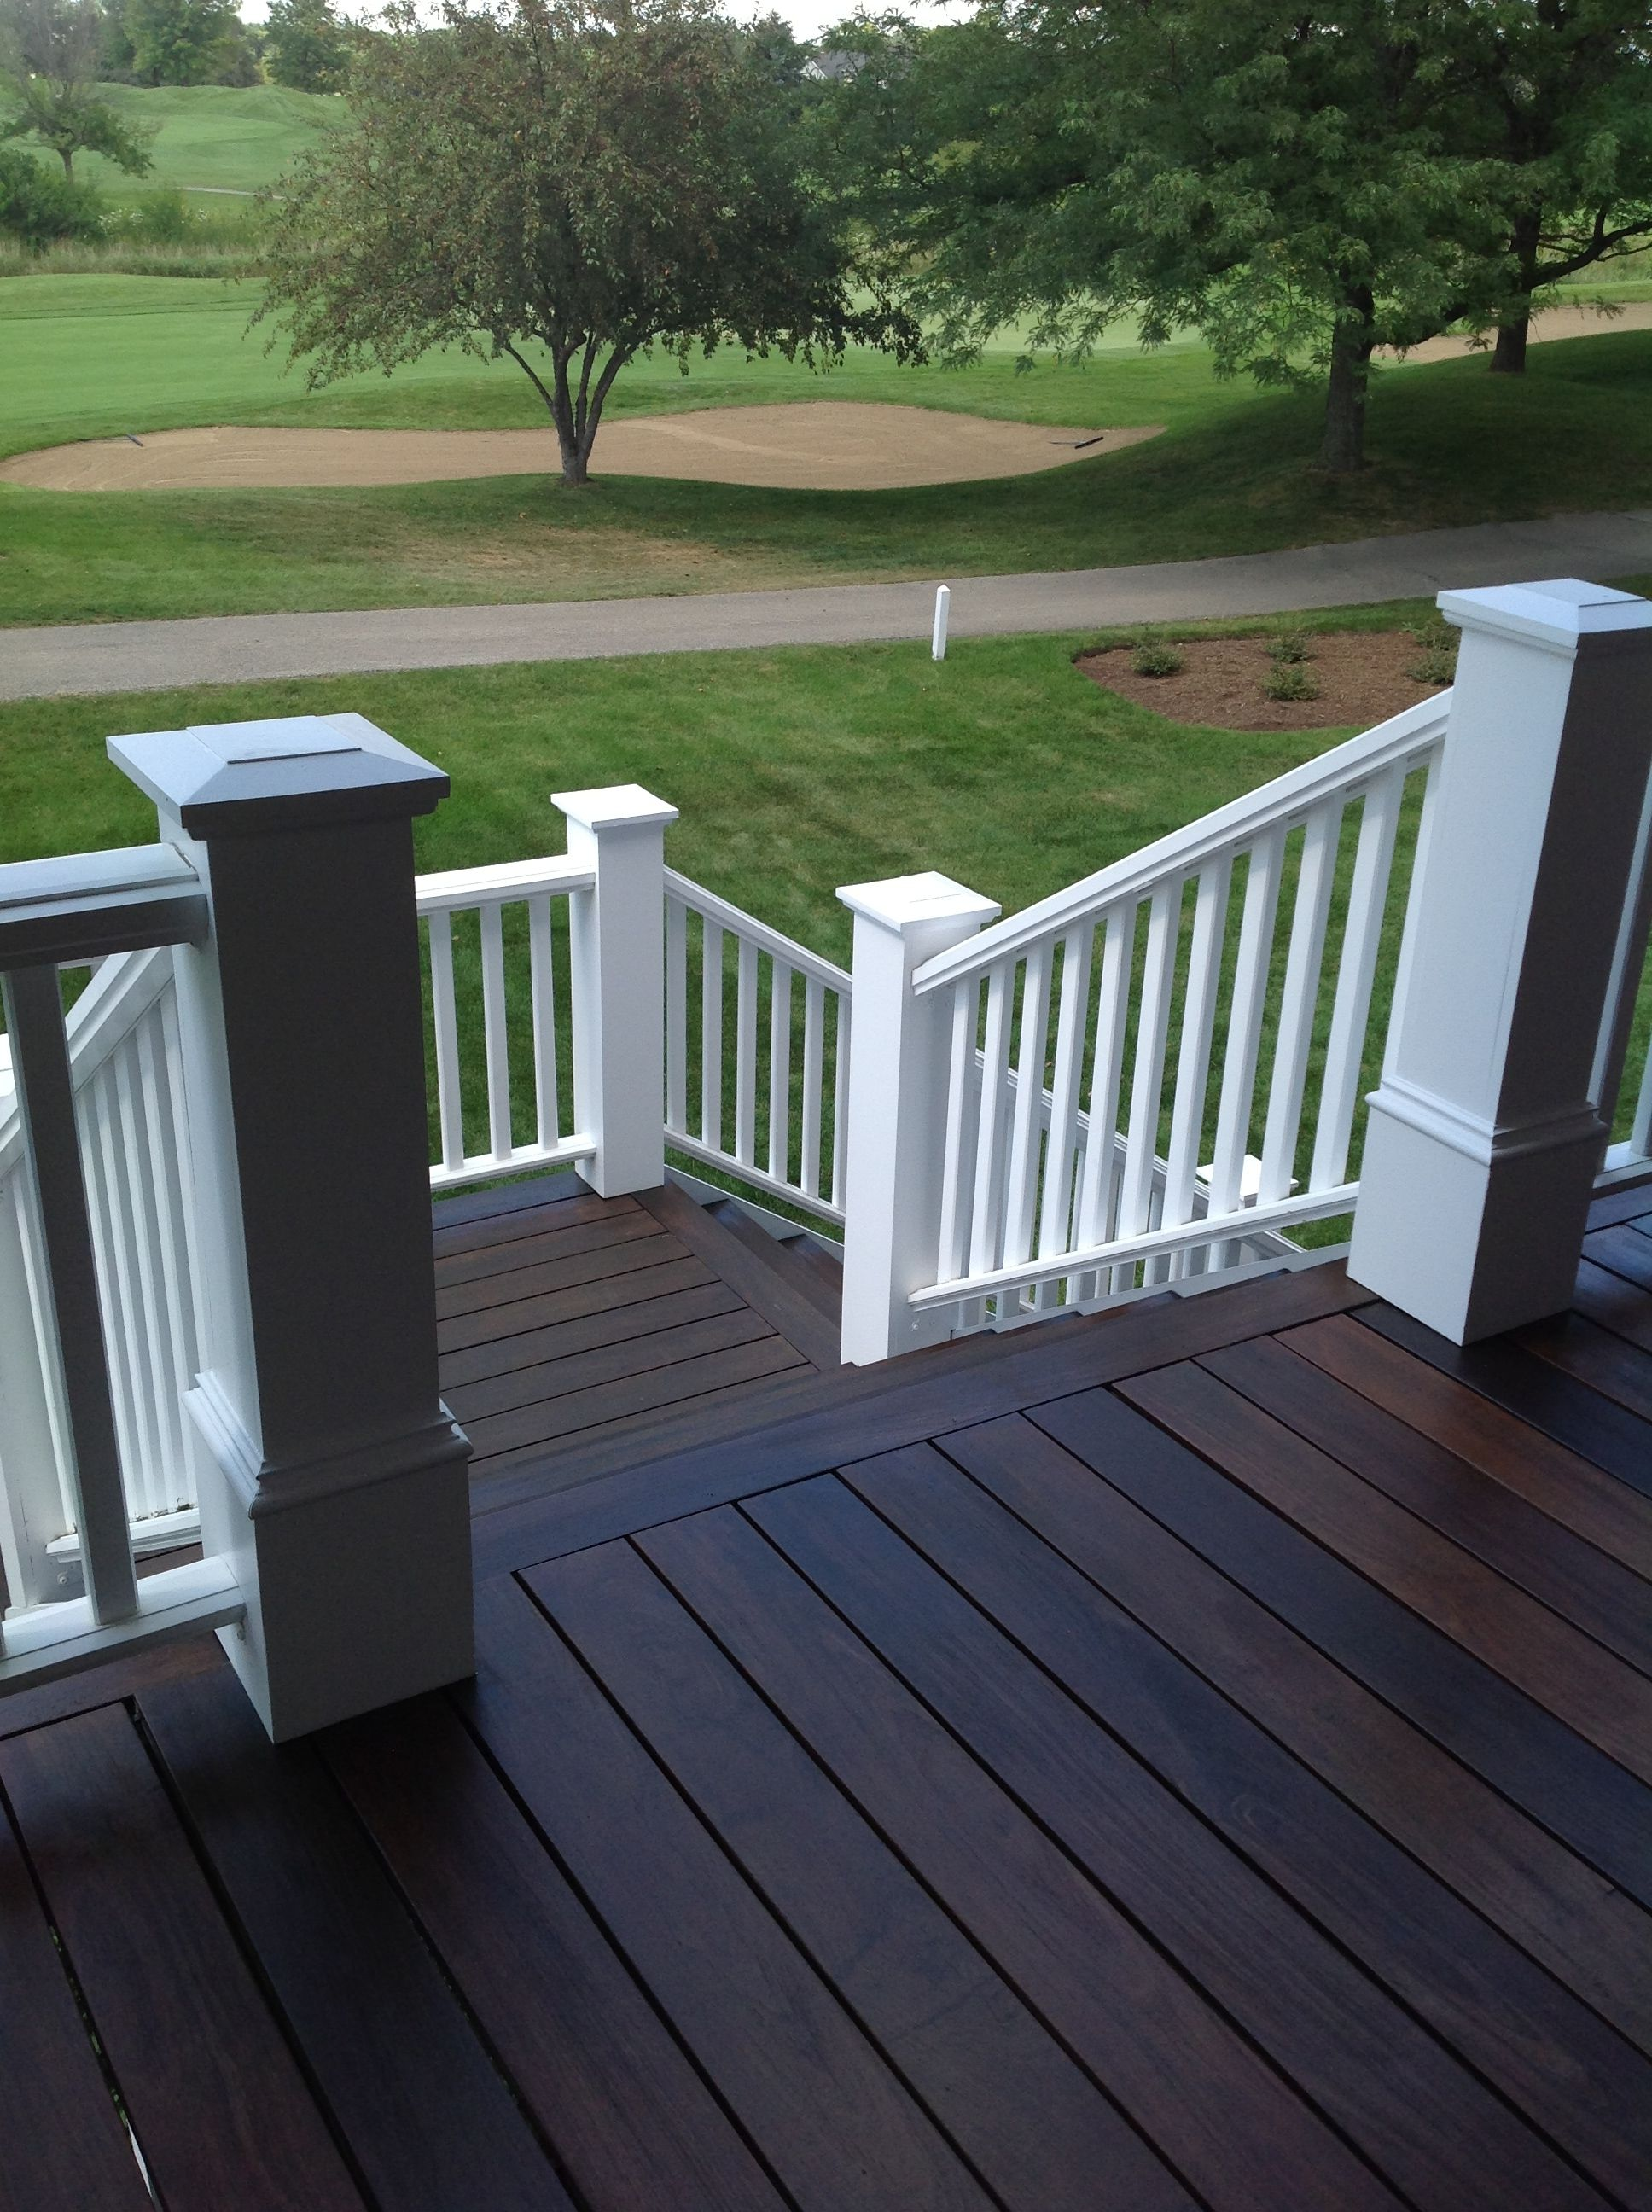 Dark Cool Deck Paint Porch Design Deck Paint Colors Deck Paint